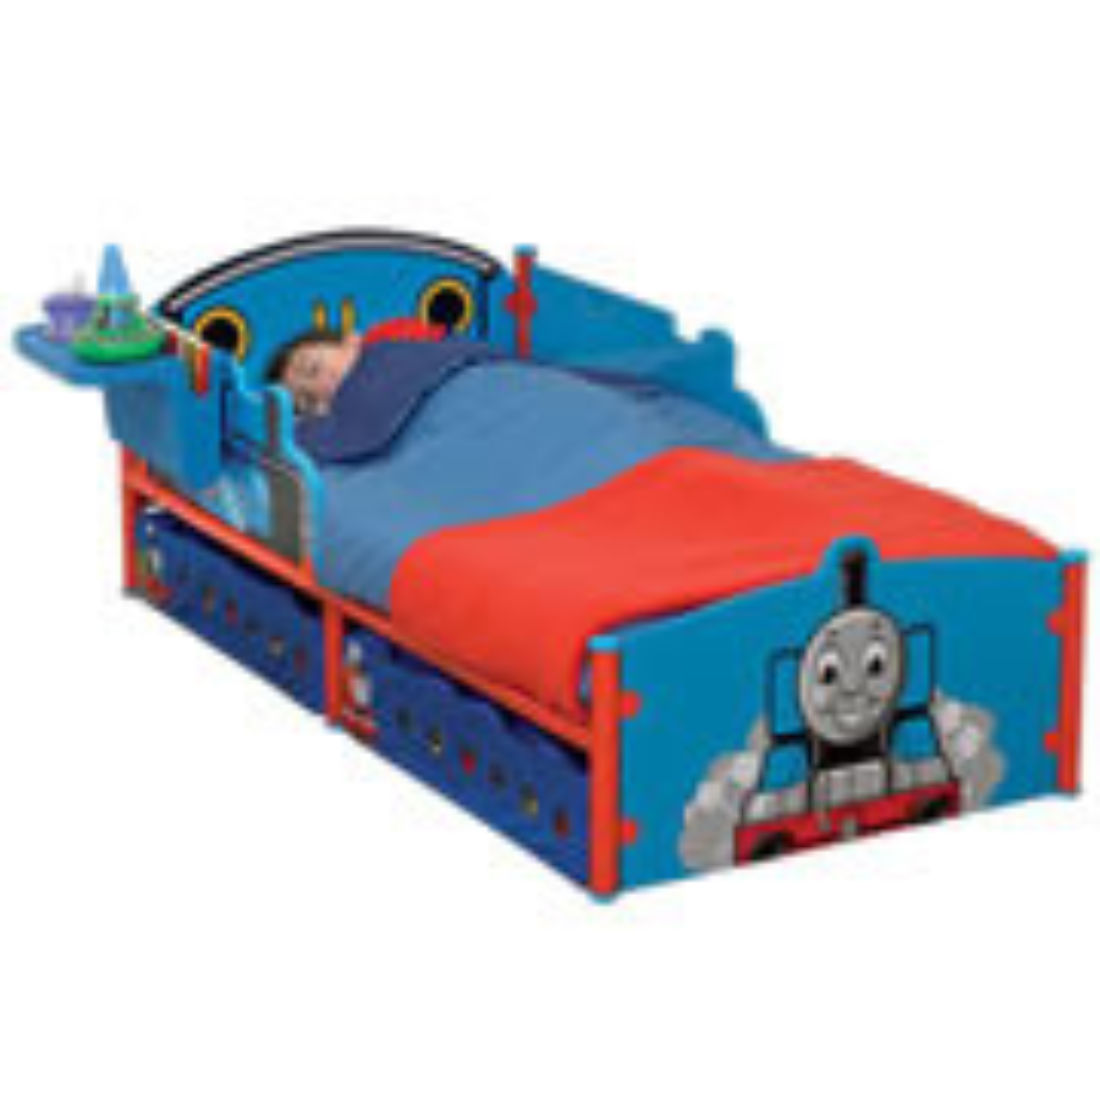 Furniture beds toys home garden ts further thomas the tank toddler bed